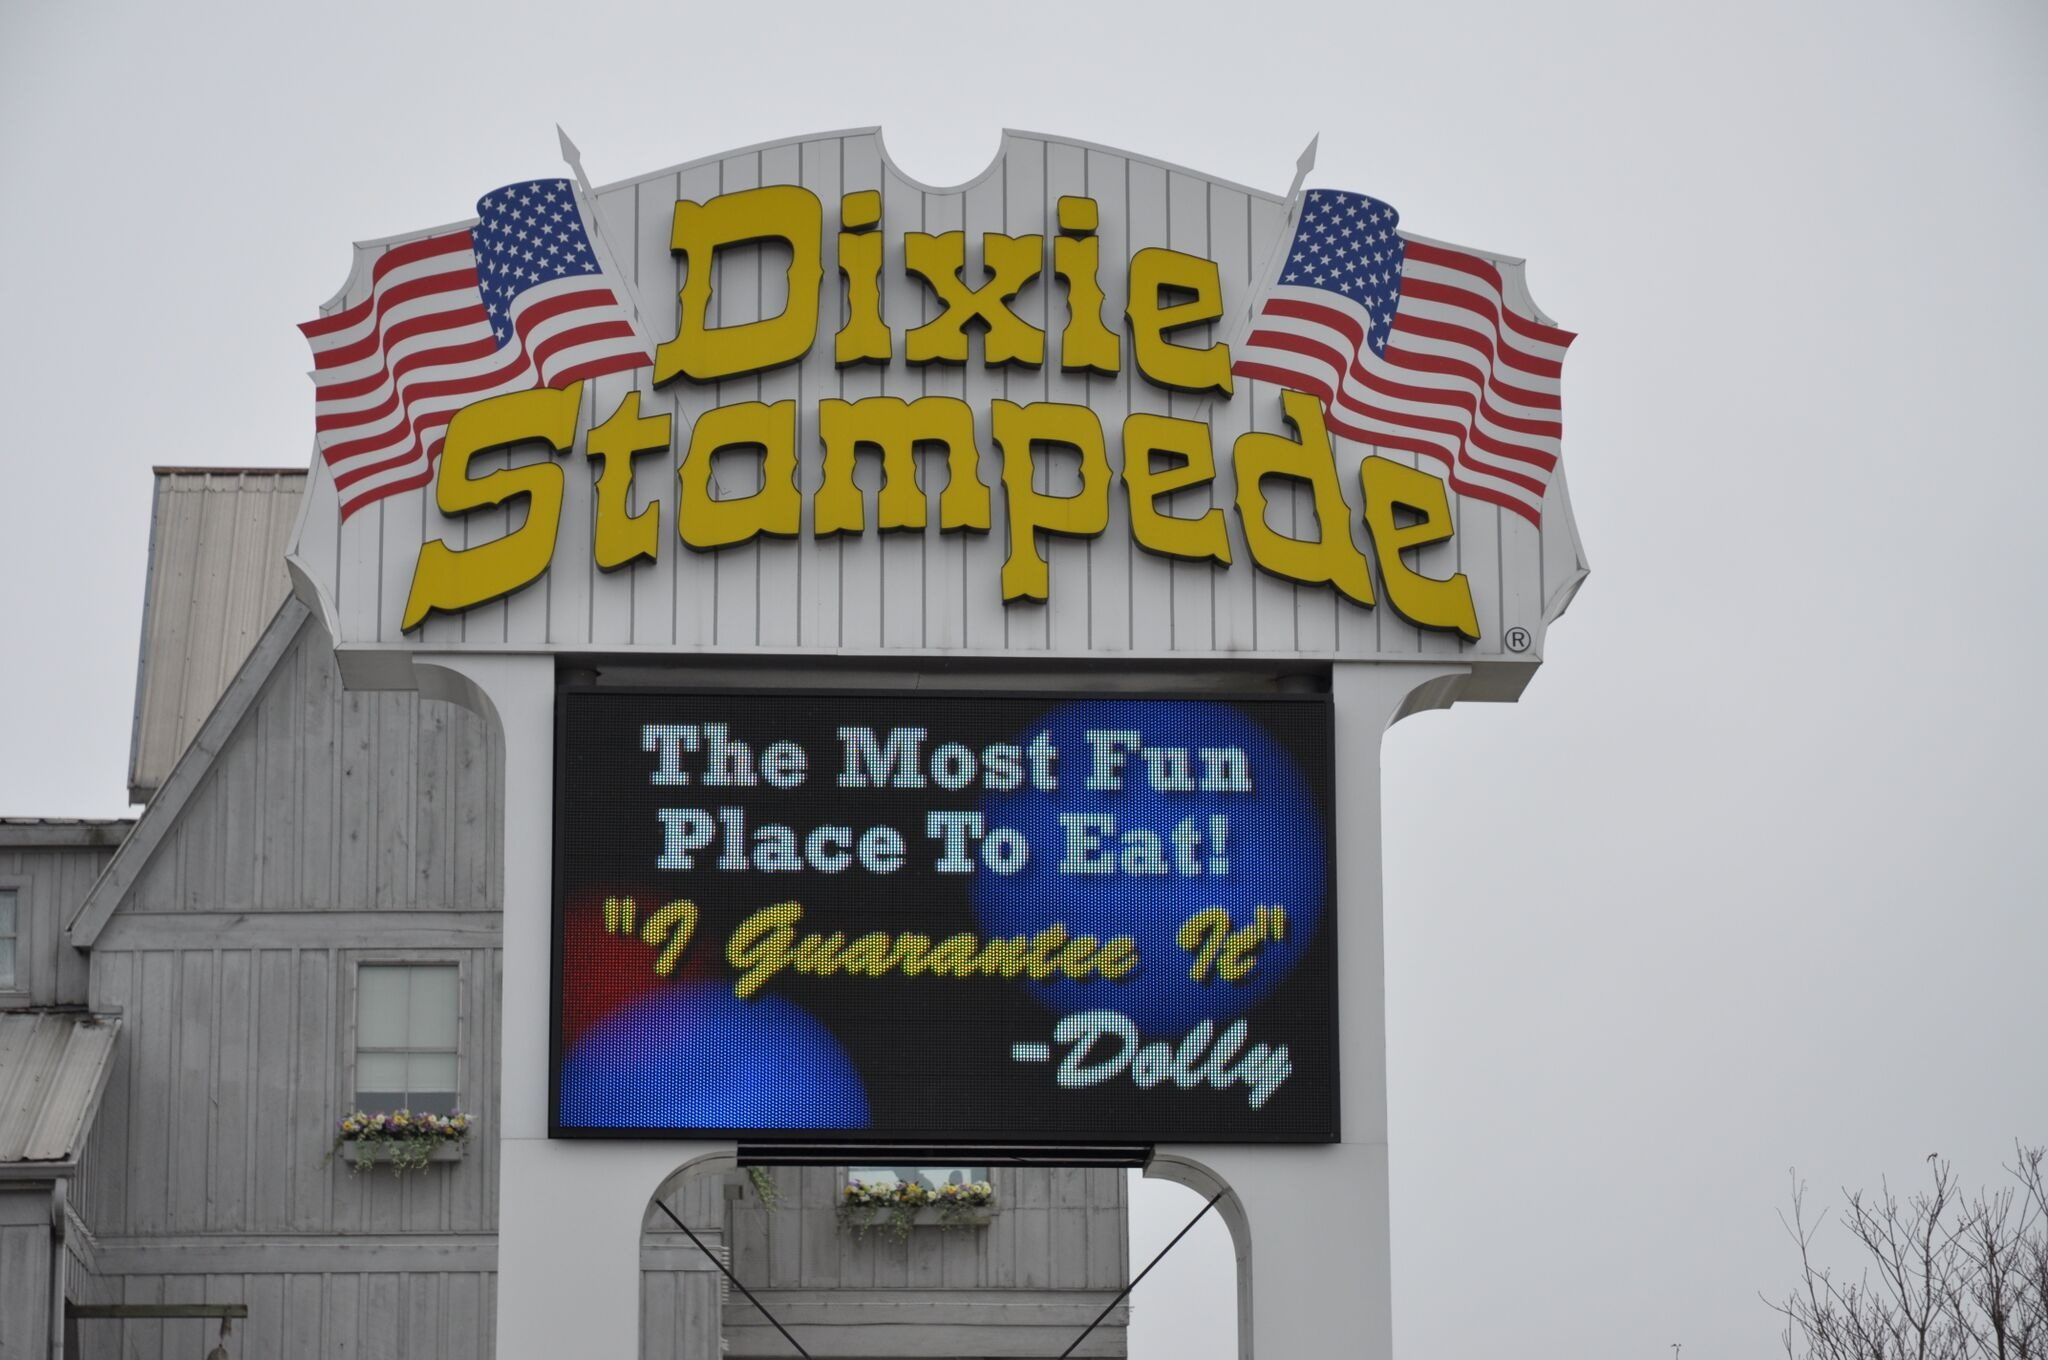 Dixie Stampede Coupons & Tips For Visiting The Pigeon Forge Dinner Show - Free Printable Dollywood Coupons